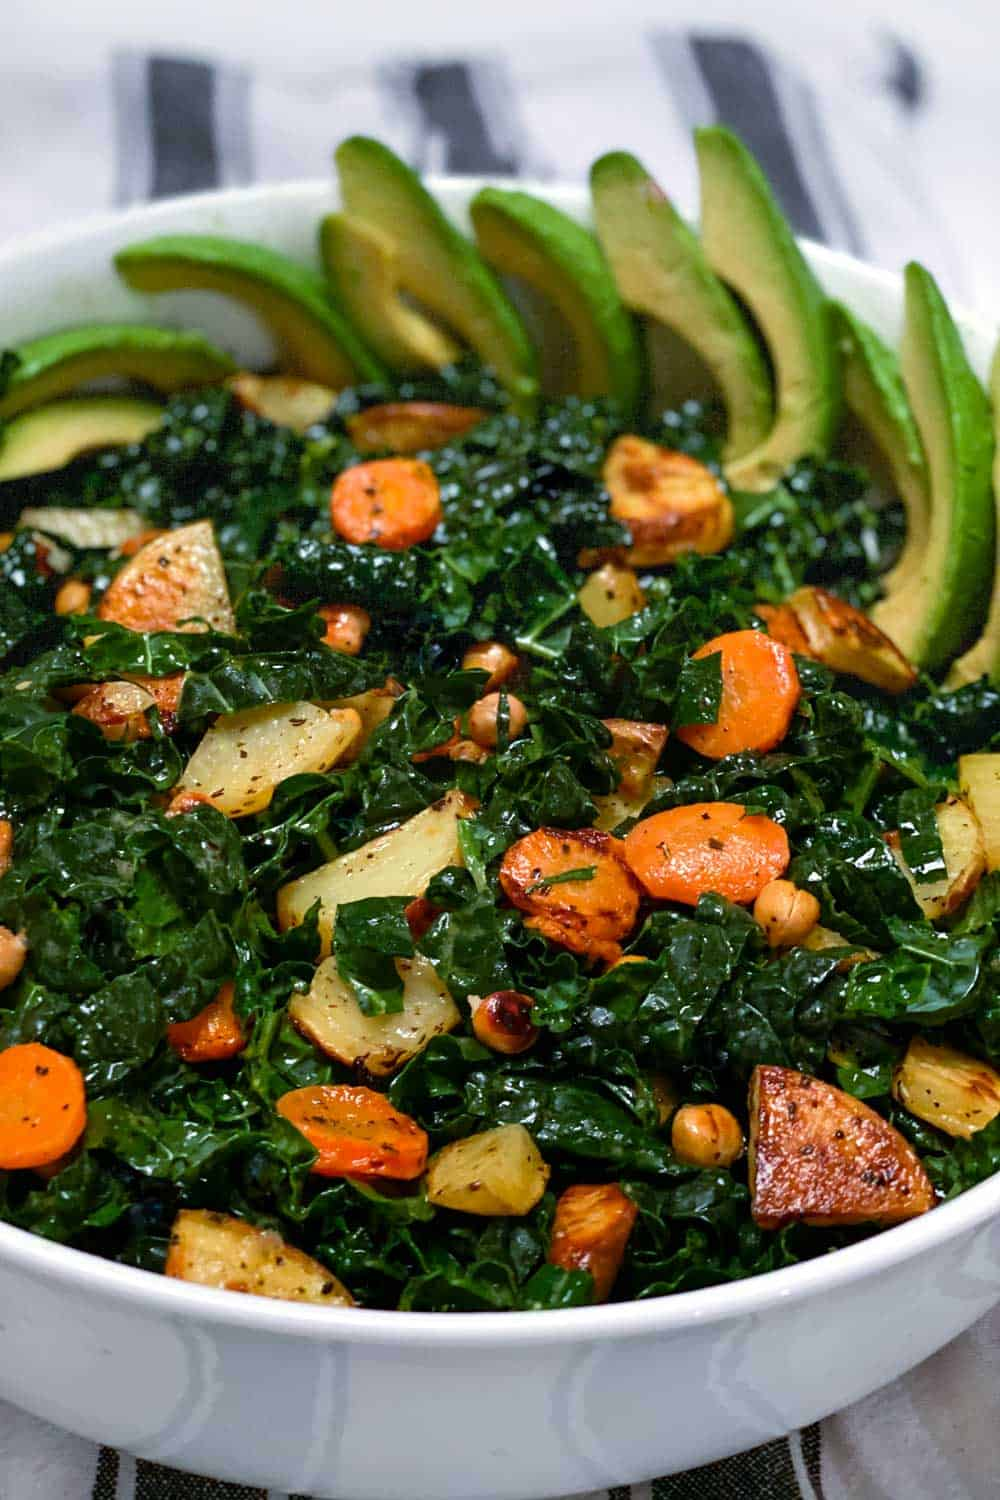 close up of white serving bowl filled with shredded kale and roasted carrots, potatoes, chickpeas and sliced avocado